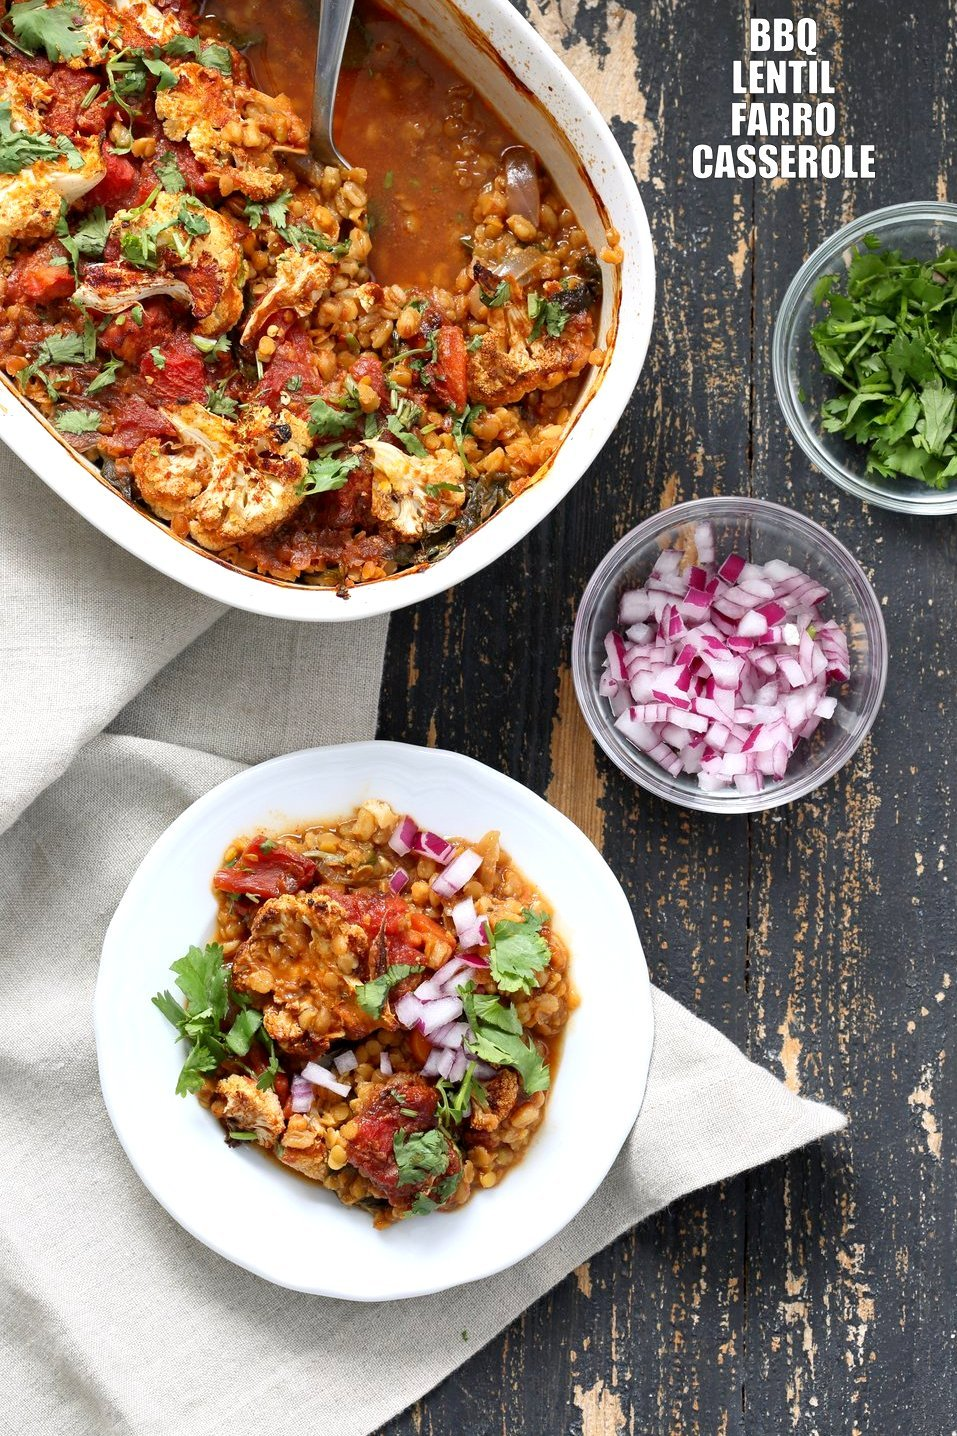 BBQ Lentil Farro Cauliflower Casserole. BBQ Casserole with Red Lentils, Farro, Veggies, Spinach, Cauliflower all layered and baked. Amazing Flavors! #Vegan #Nutfree #Recipe. Can be soyfree #Glutenfree #veganricha | VeganRicha.com